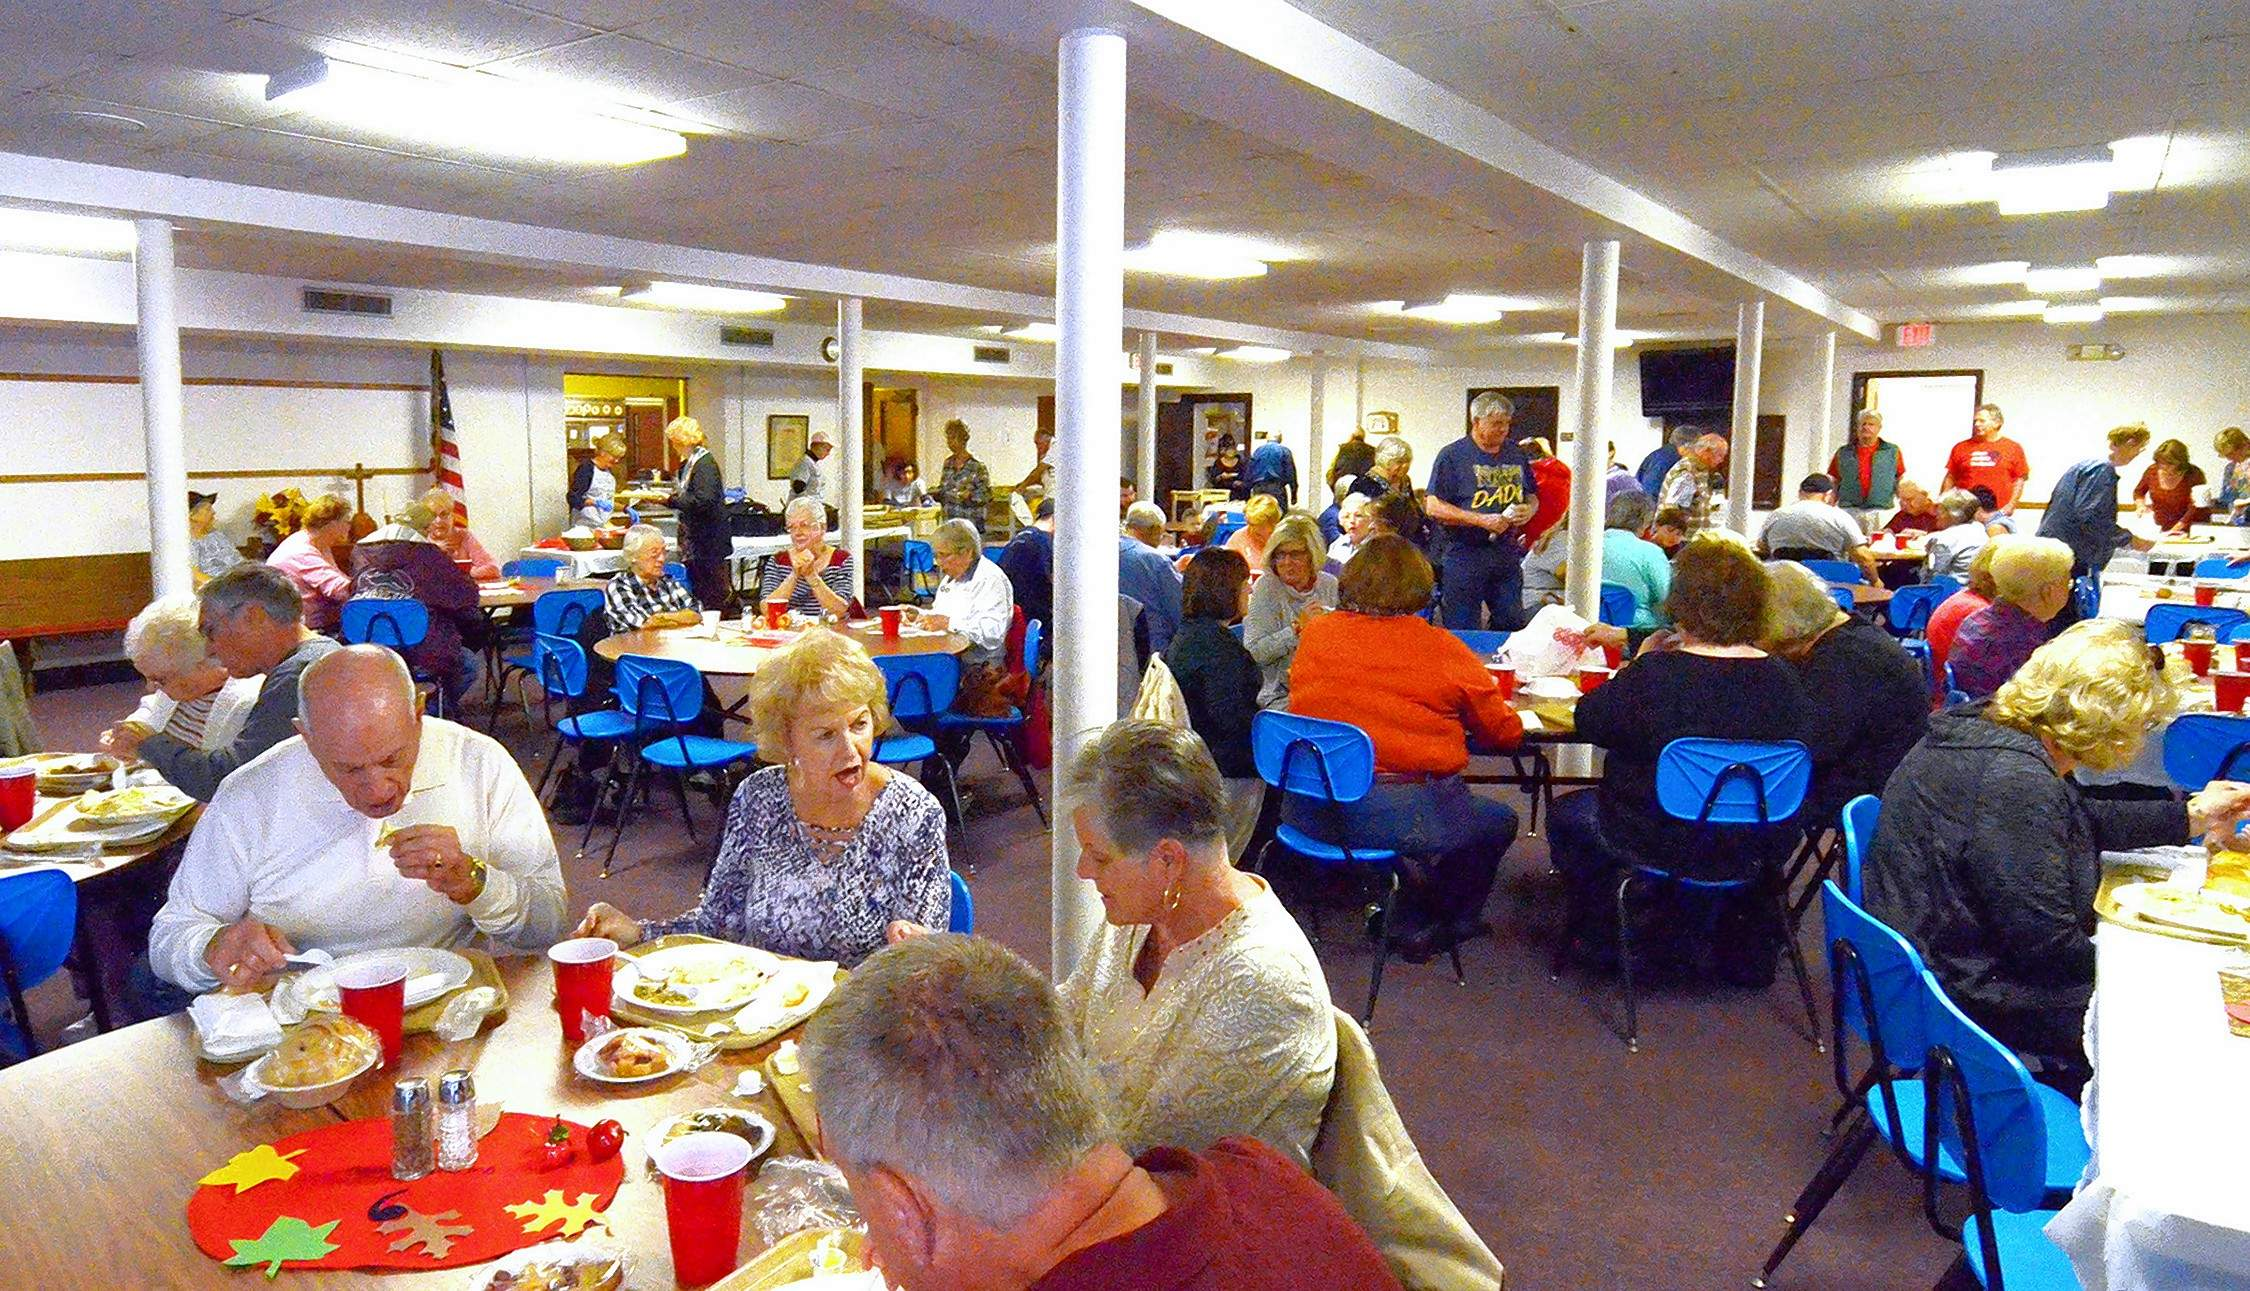 Nearly every seat was taken at noon Friday at Zion United Church of Christ's annual Chicken and Dumpling Dinner.